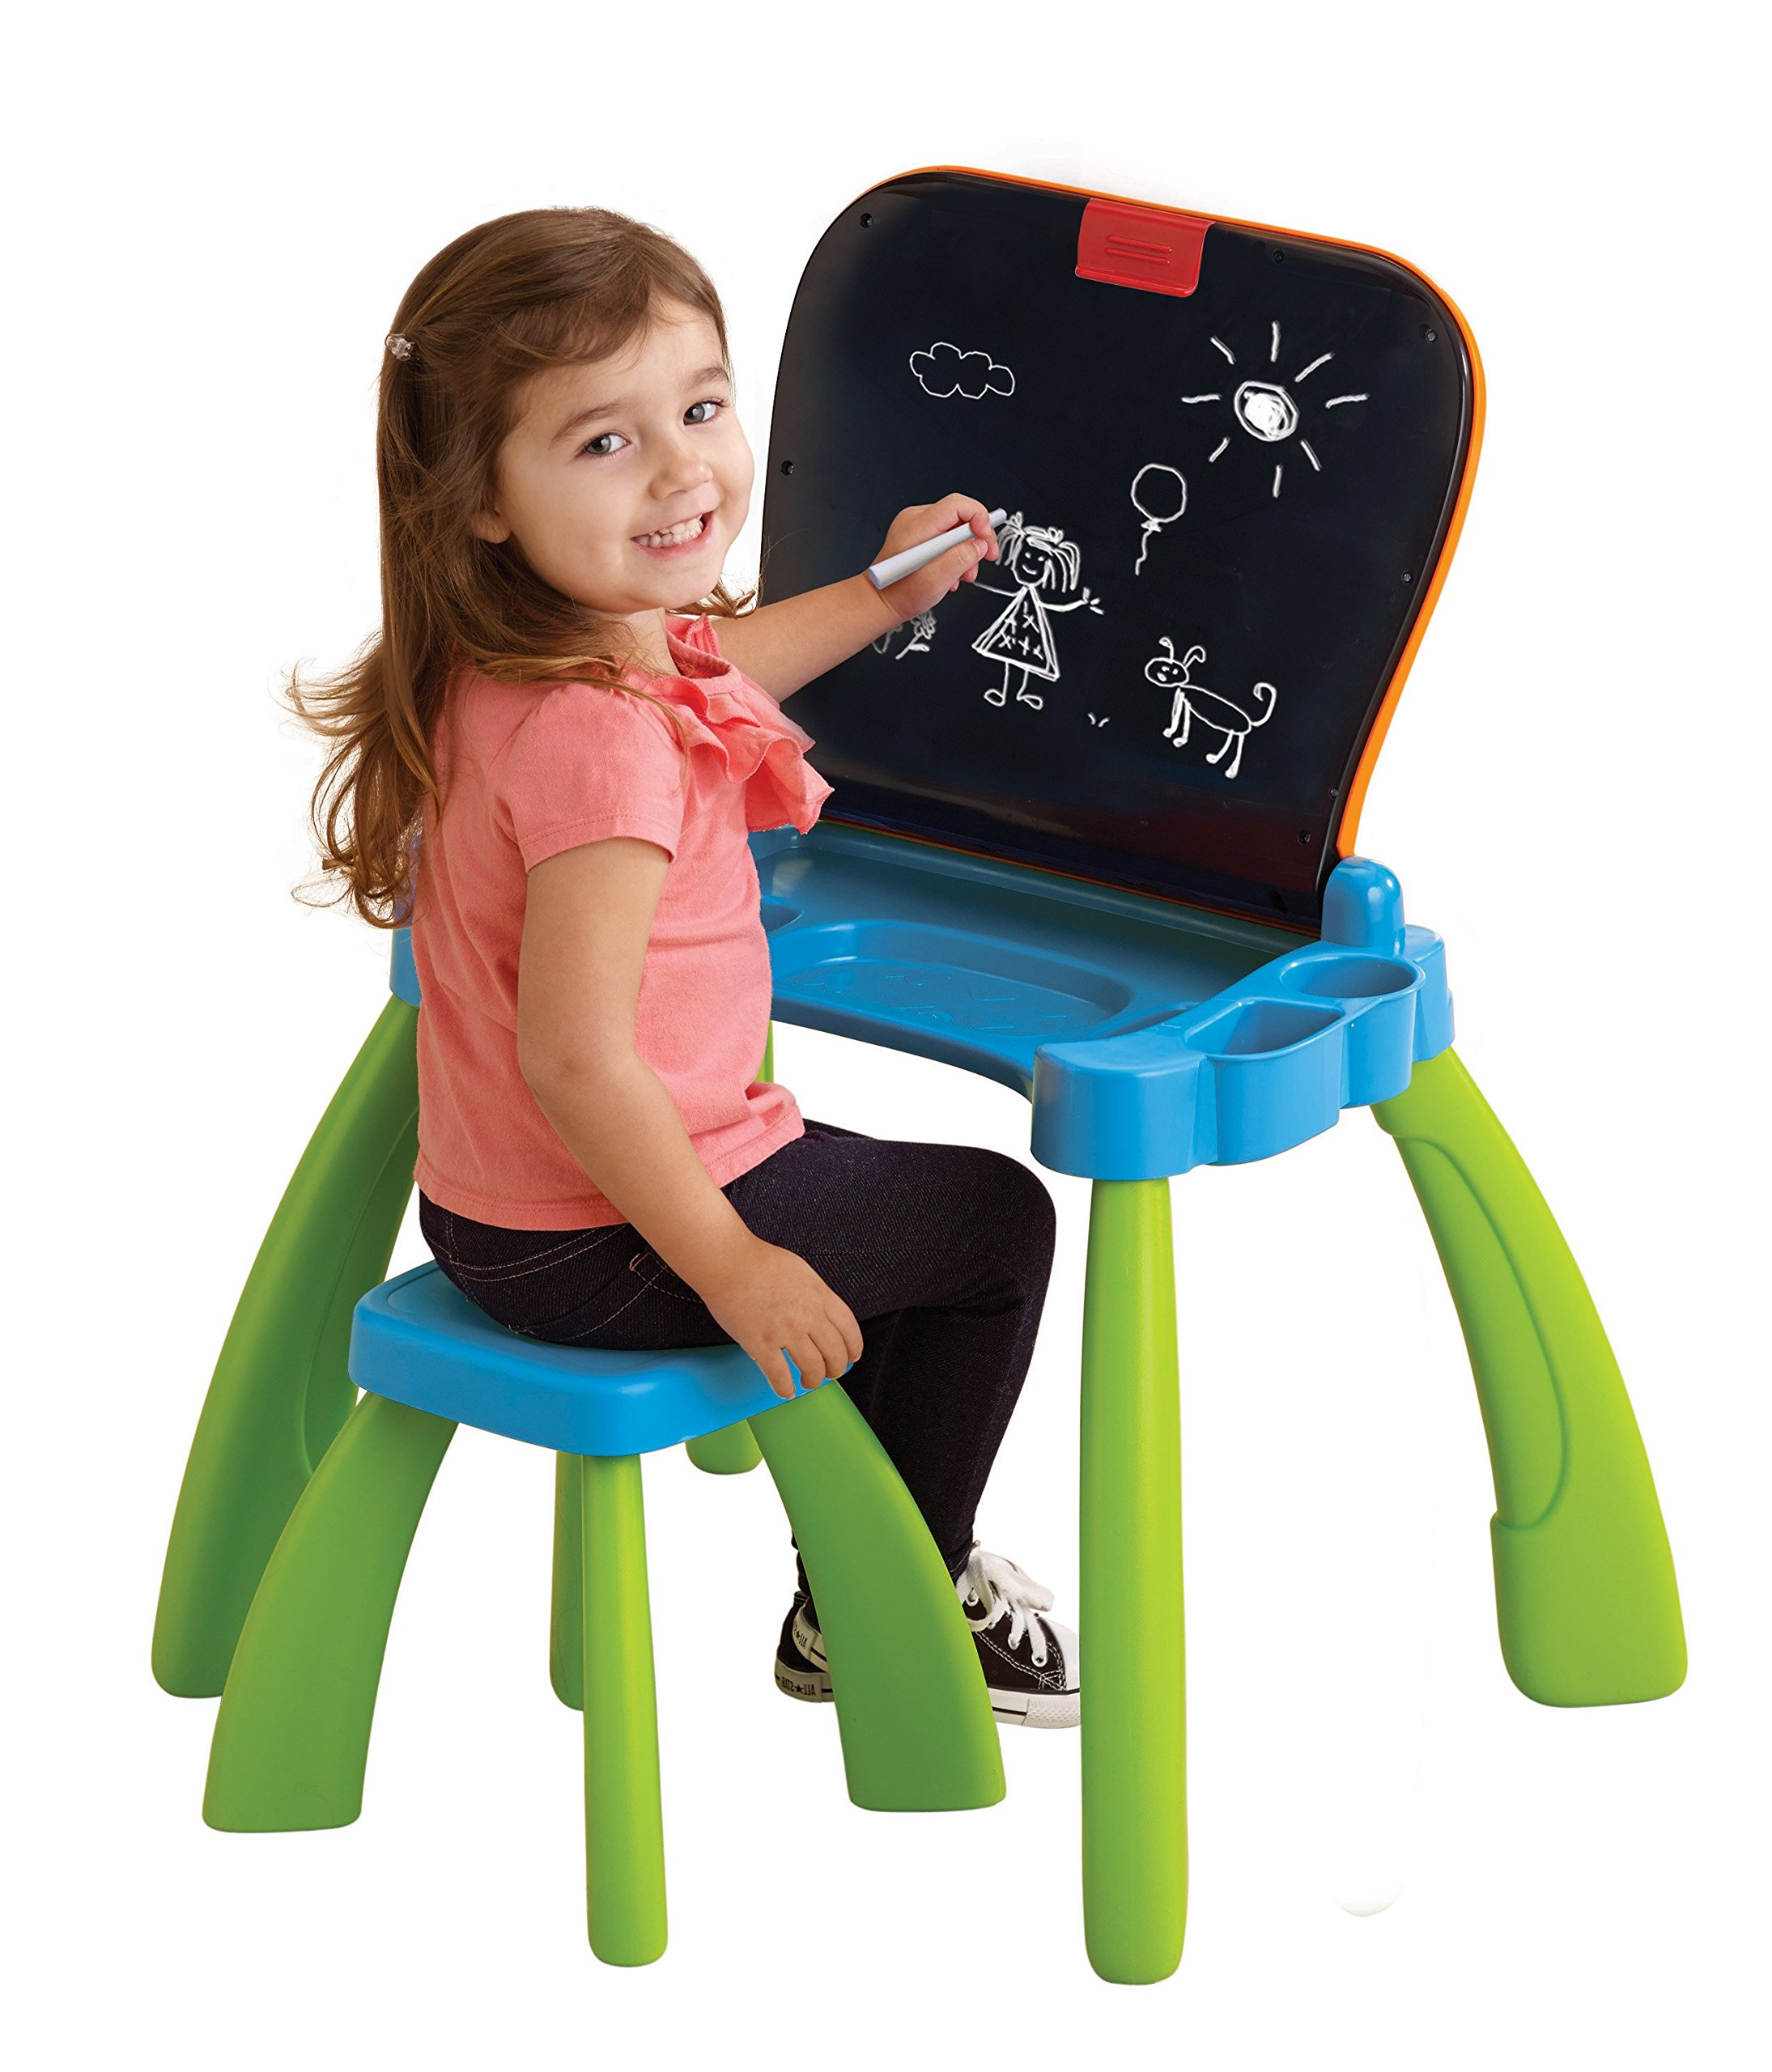 VTech Touch and Learn Activity Desk (Frustration Free Packaging), Green by VTech (Image #5)